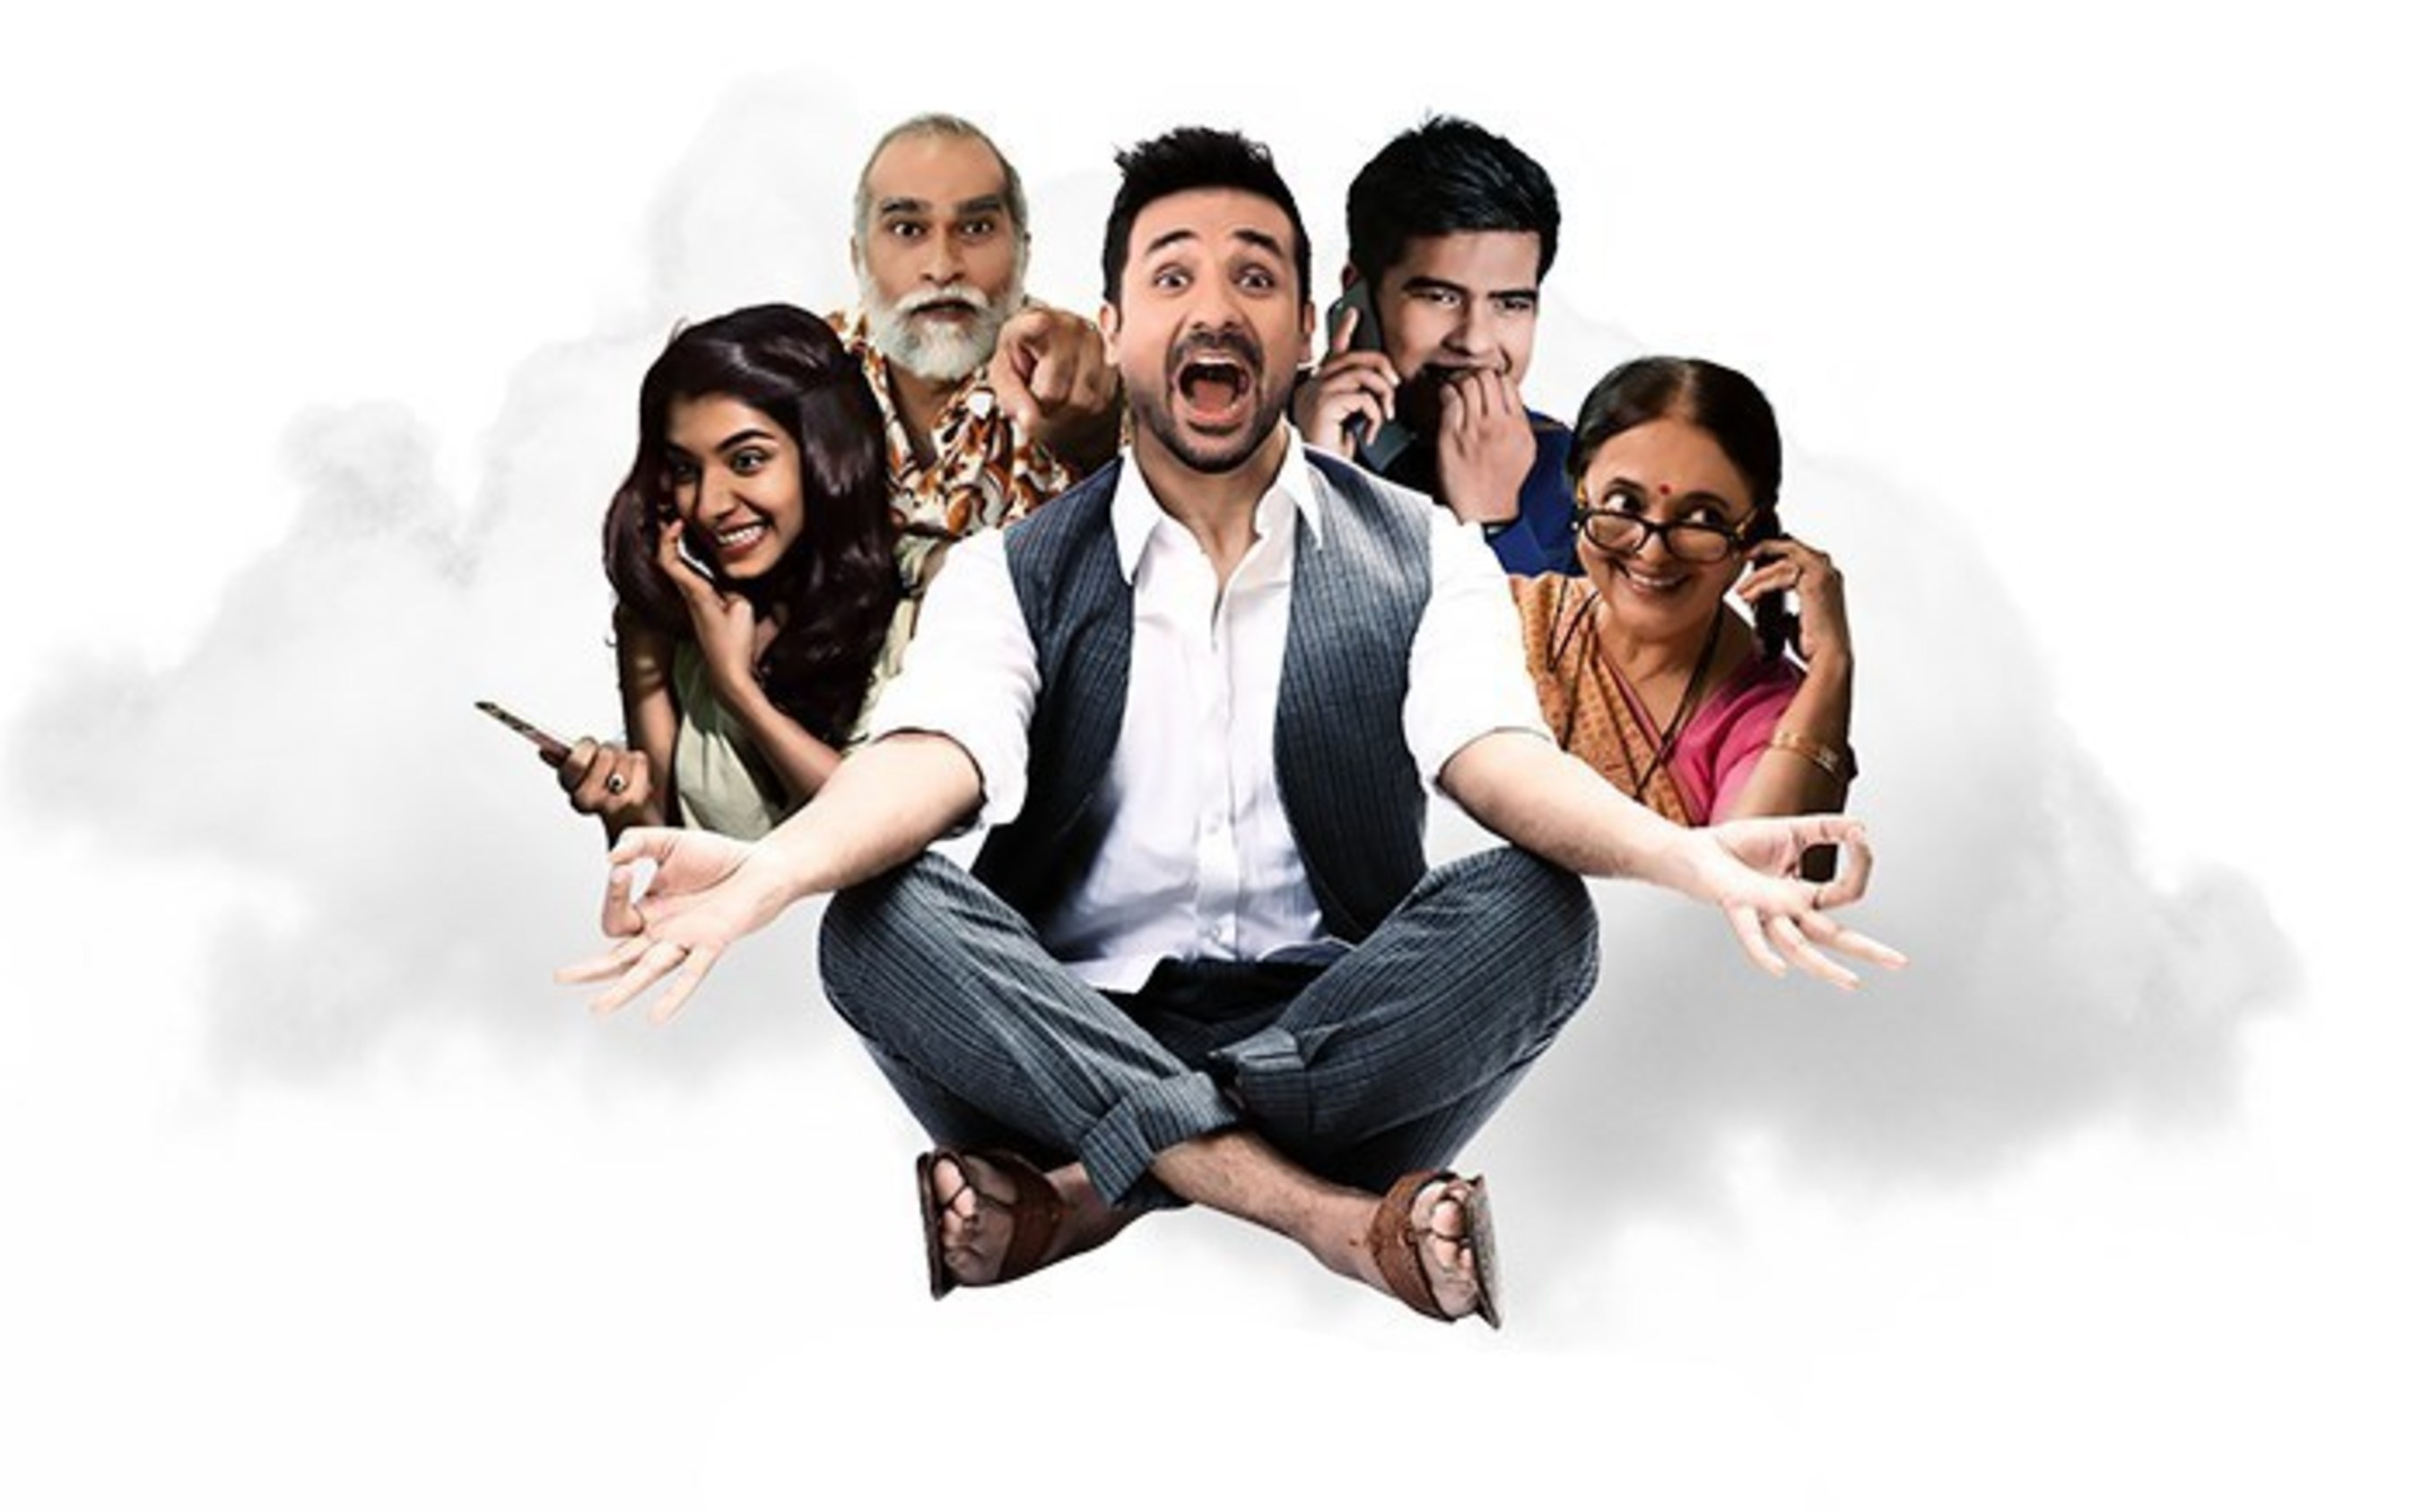 Never-Ending Calls Drive Vir Das Crazy As He Partners with Rebtel for Viral Video Series